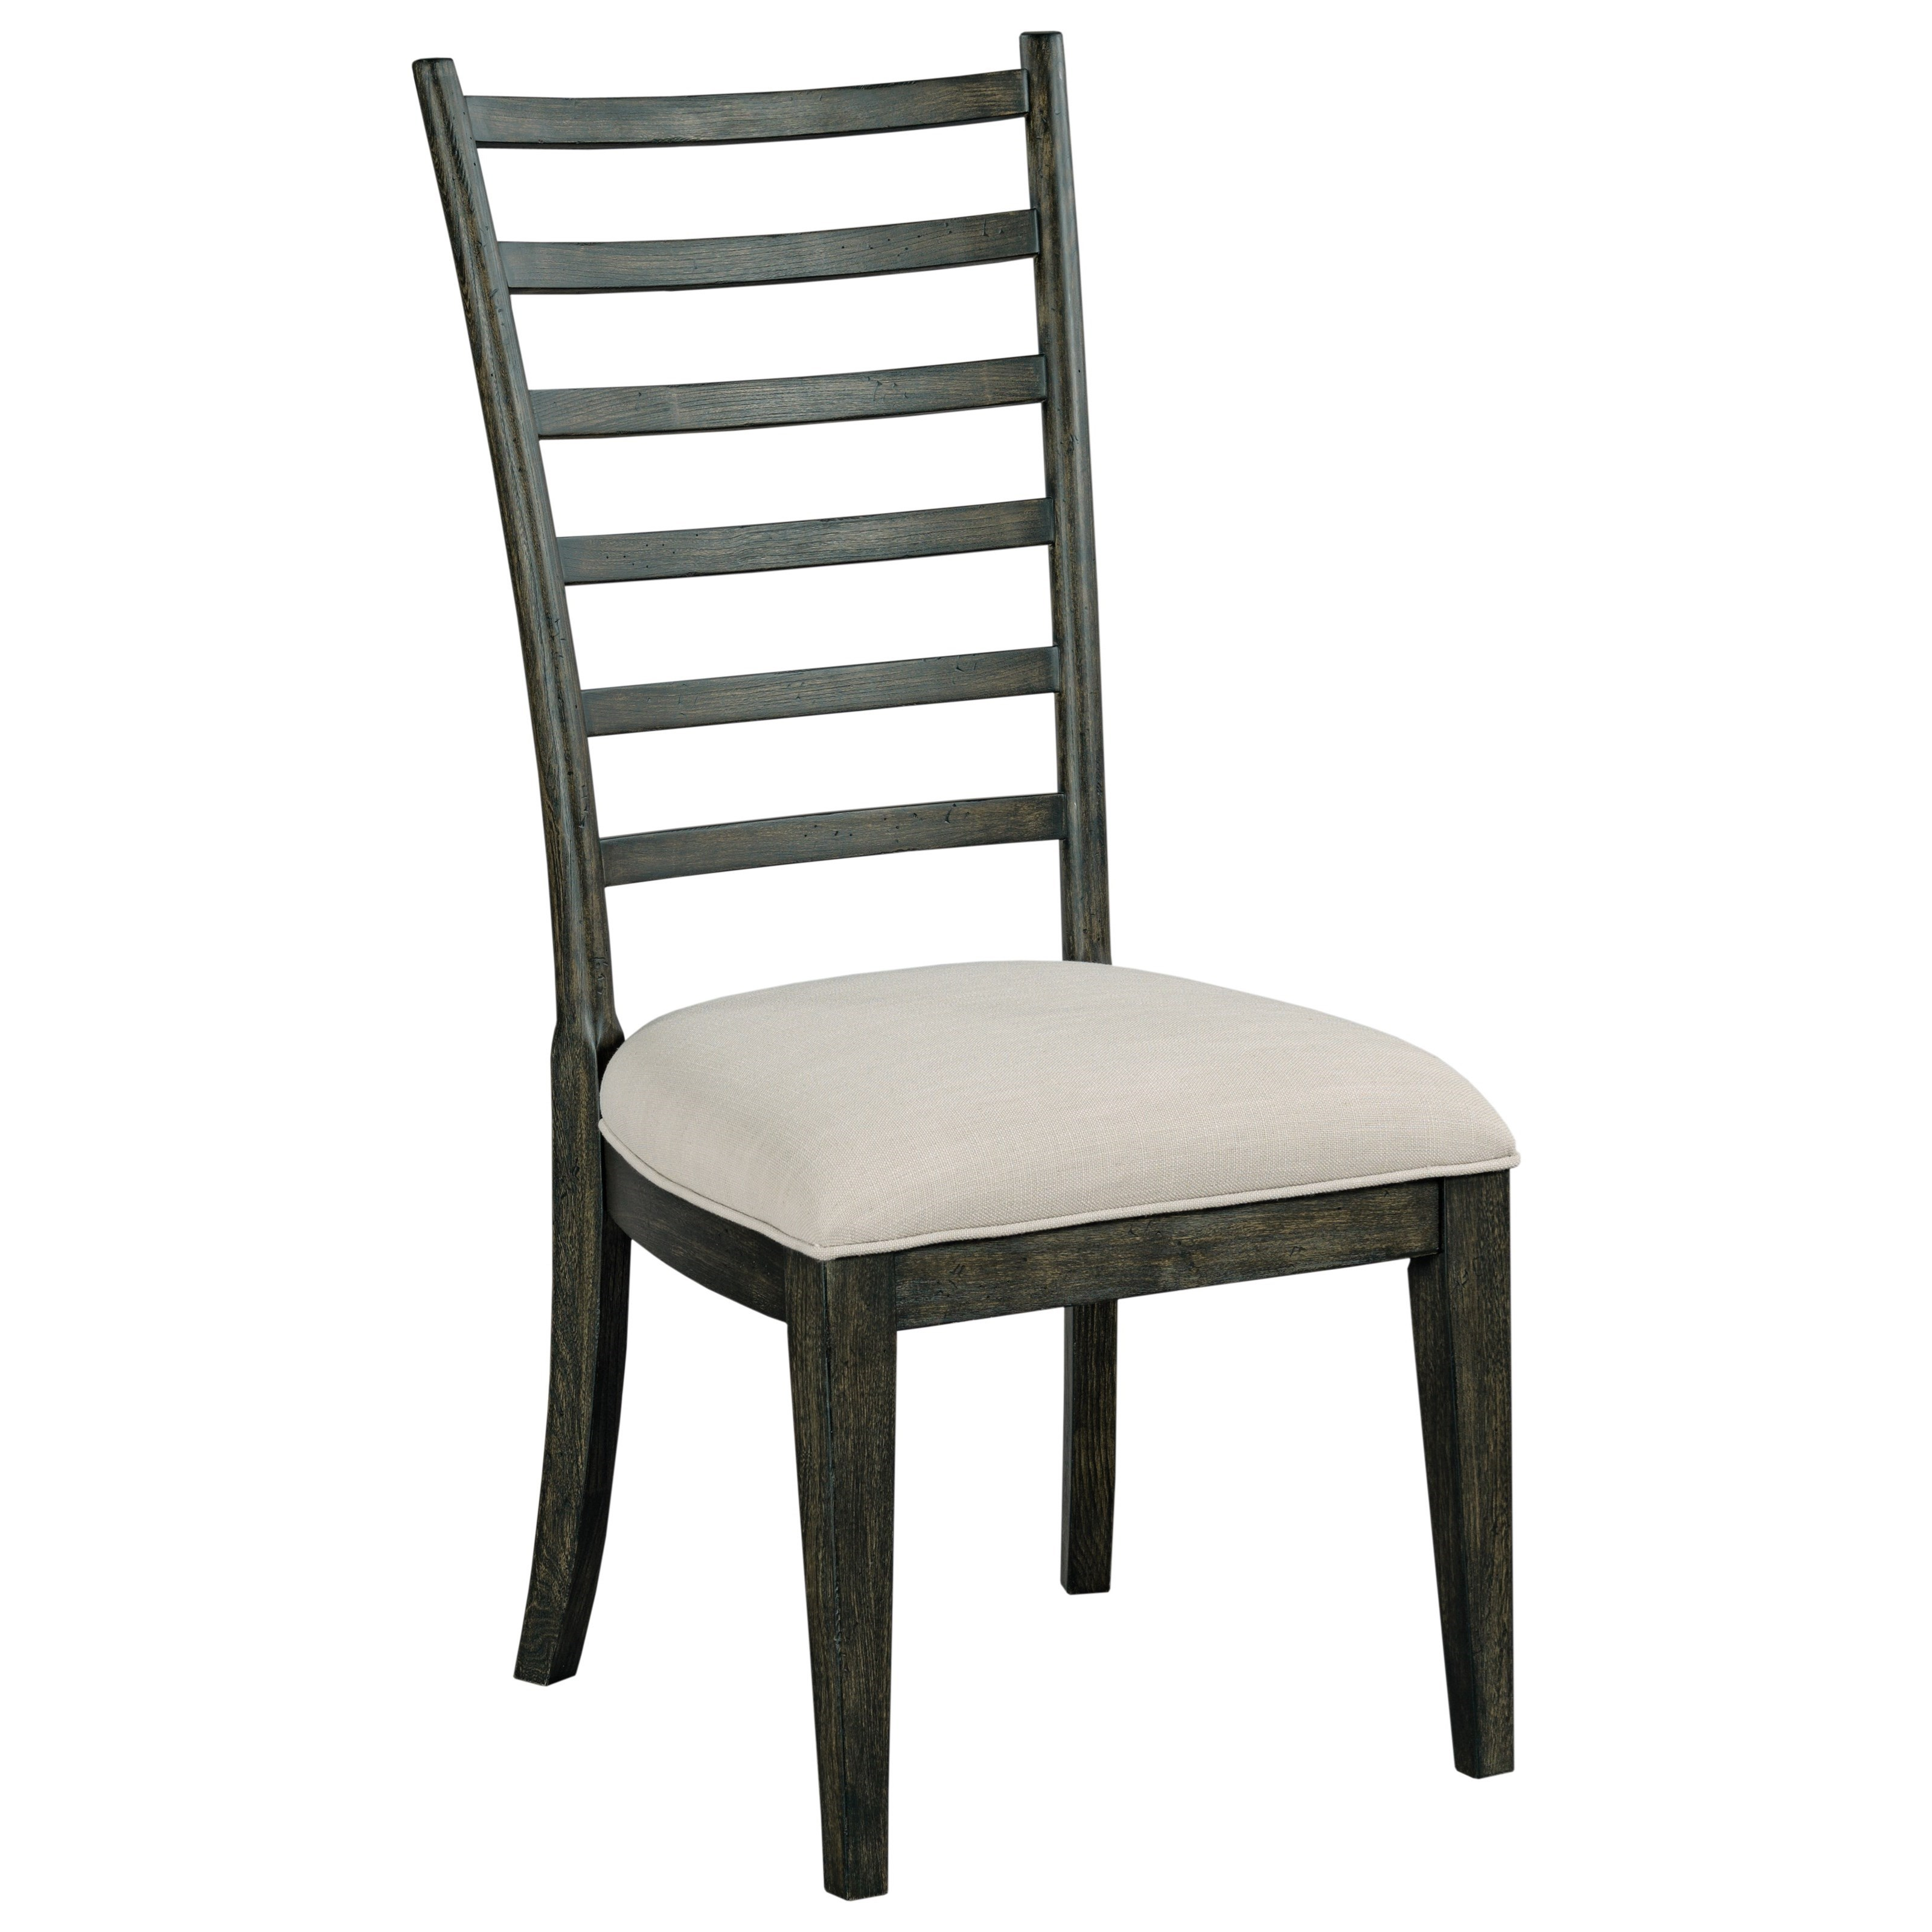 Plank Road Oakley Side Chair                            by Kincaid Furniture at Darvin Furniture